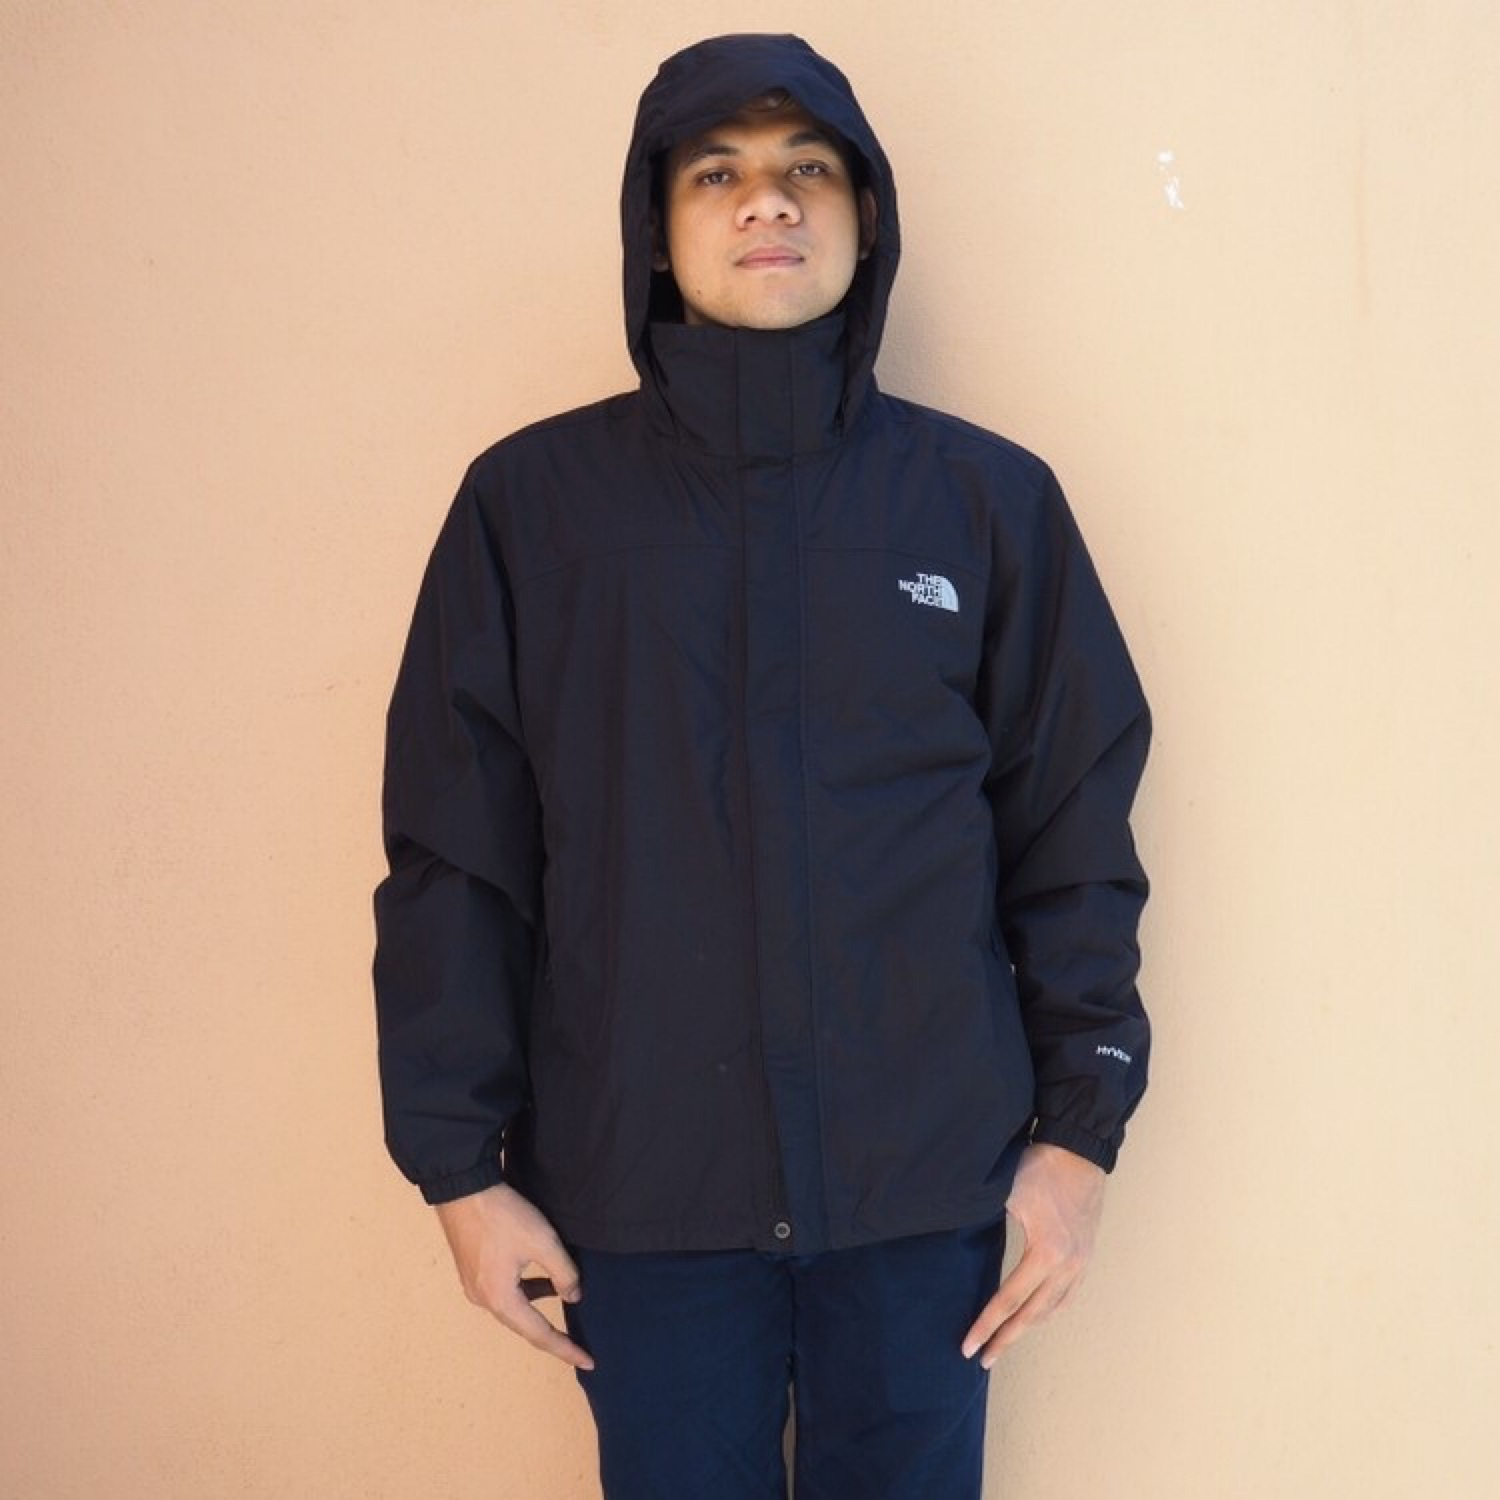 The North Face Hyvent Parka Cheaper Than Retail Price Buy Clothing Accessories And Lifestyle Products For Women Men